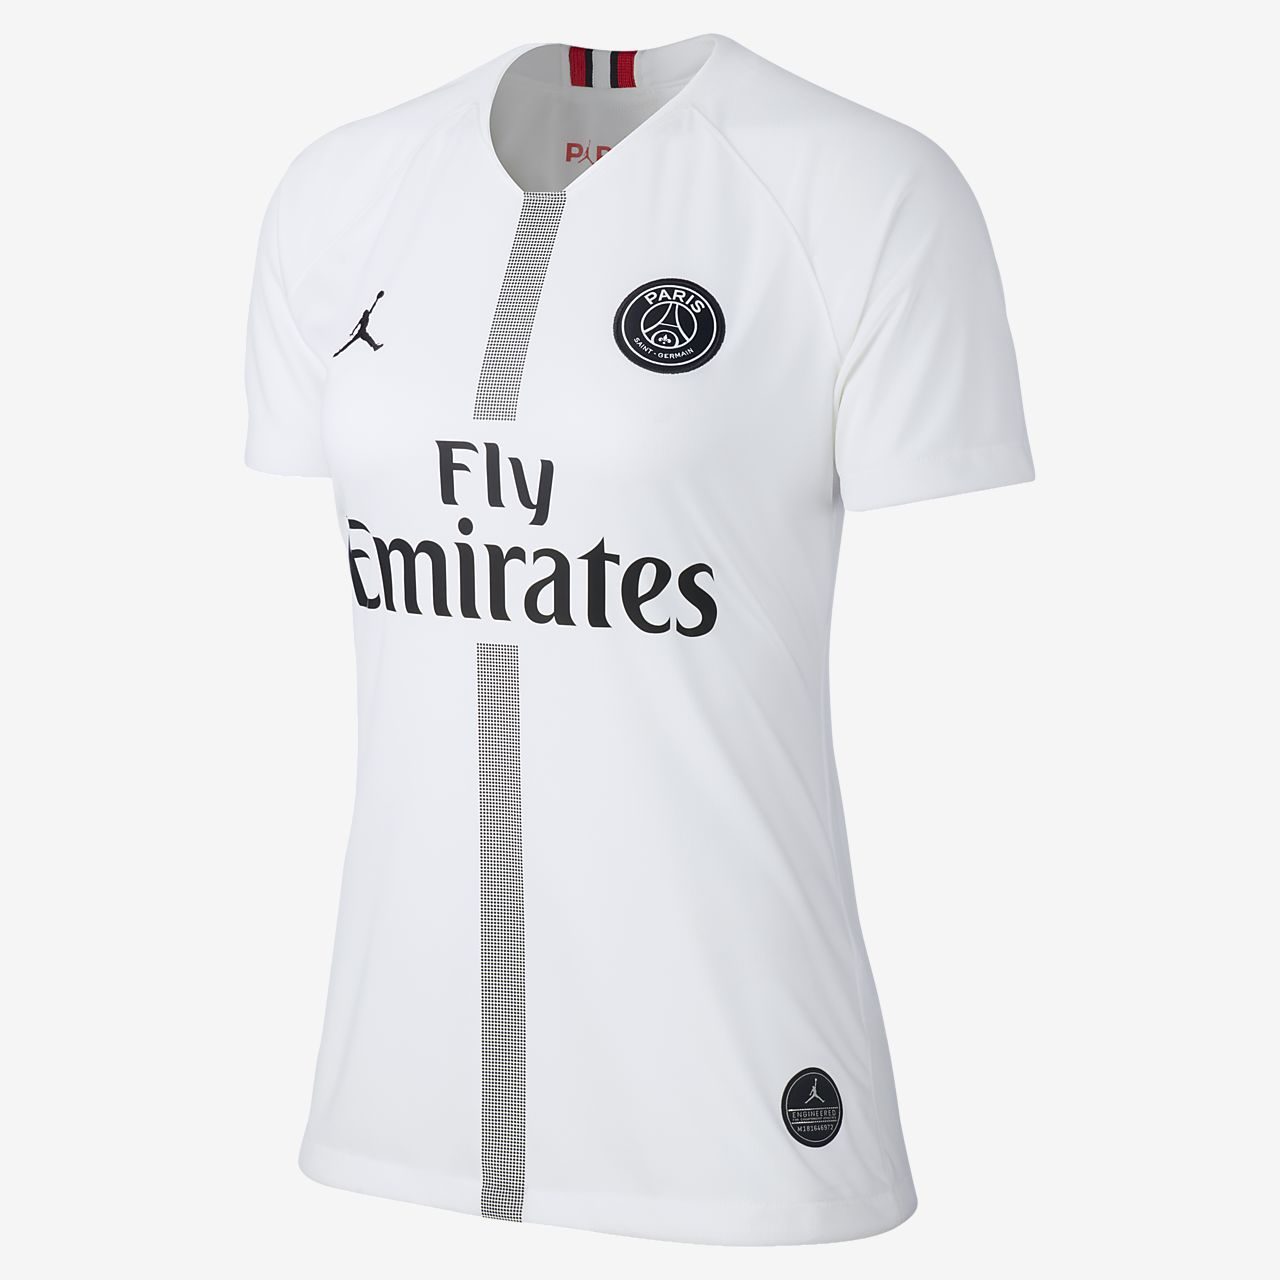 ... Camiseta de fútbol para mujer Paris Saint-Germain Stadium Third 2018 19 c51aa9966de72